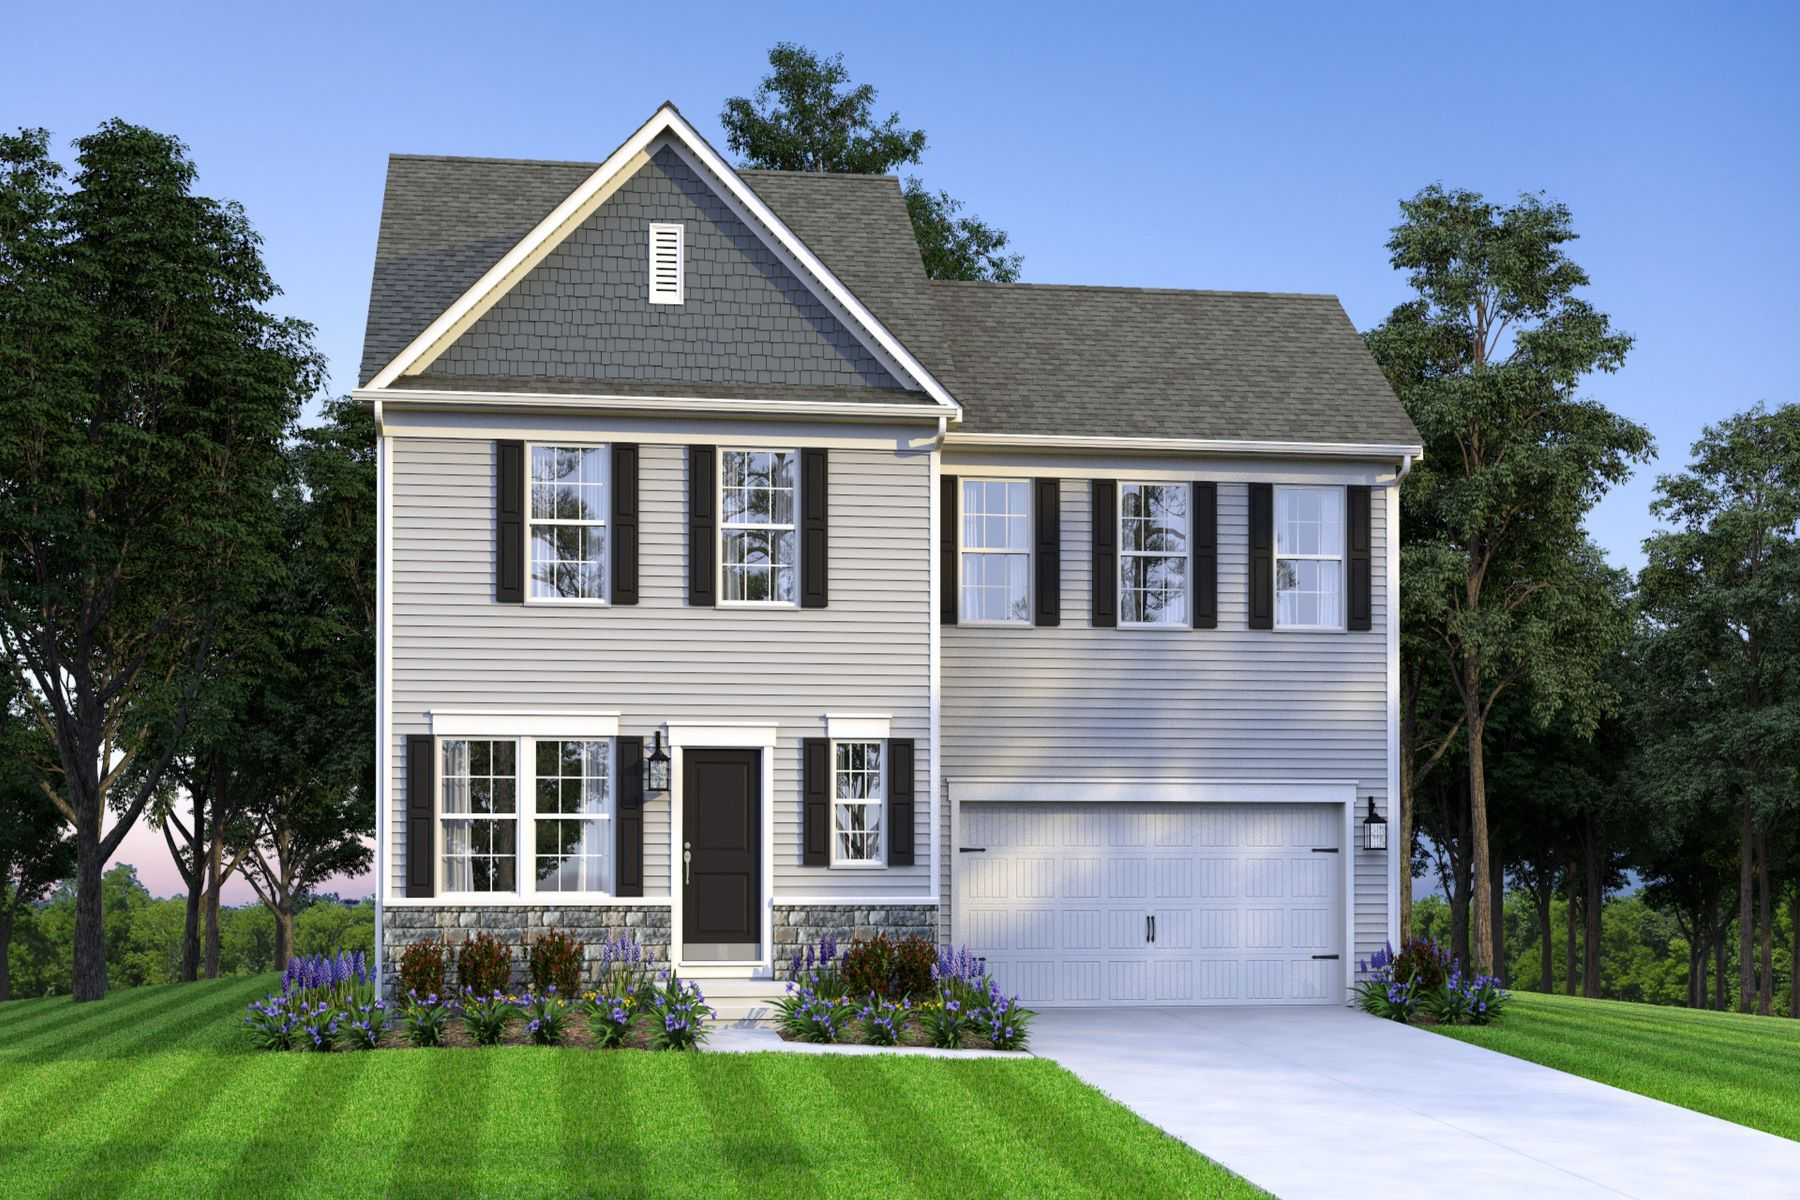 Single Family Homes için Satış at The Pearl New Construction in Delta 2102-B Bryansville Road, Delta, Pennsylvania 17314 Amerika Birleşik Devletleri